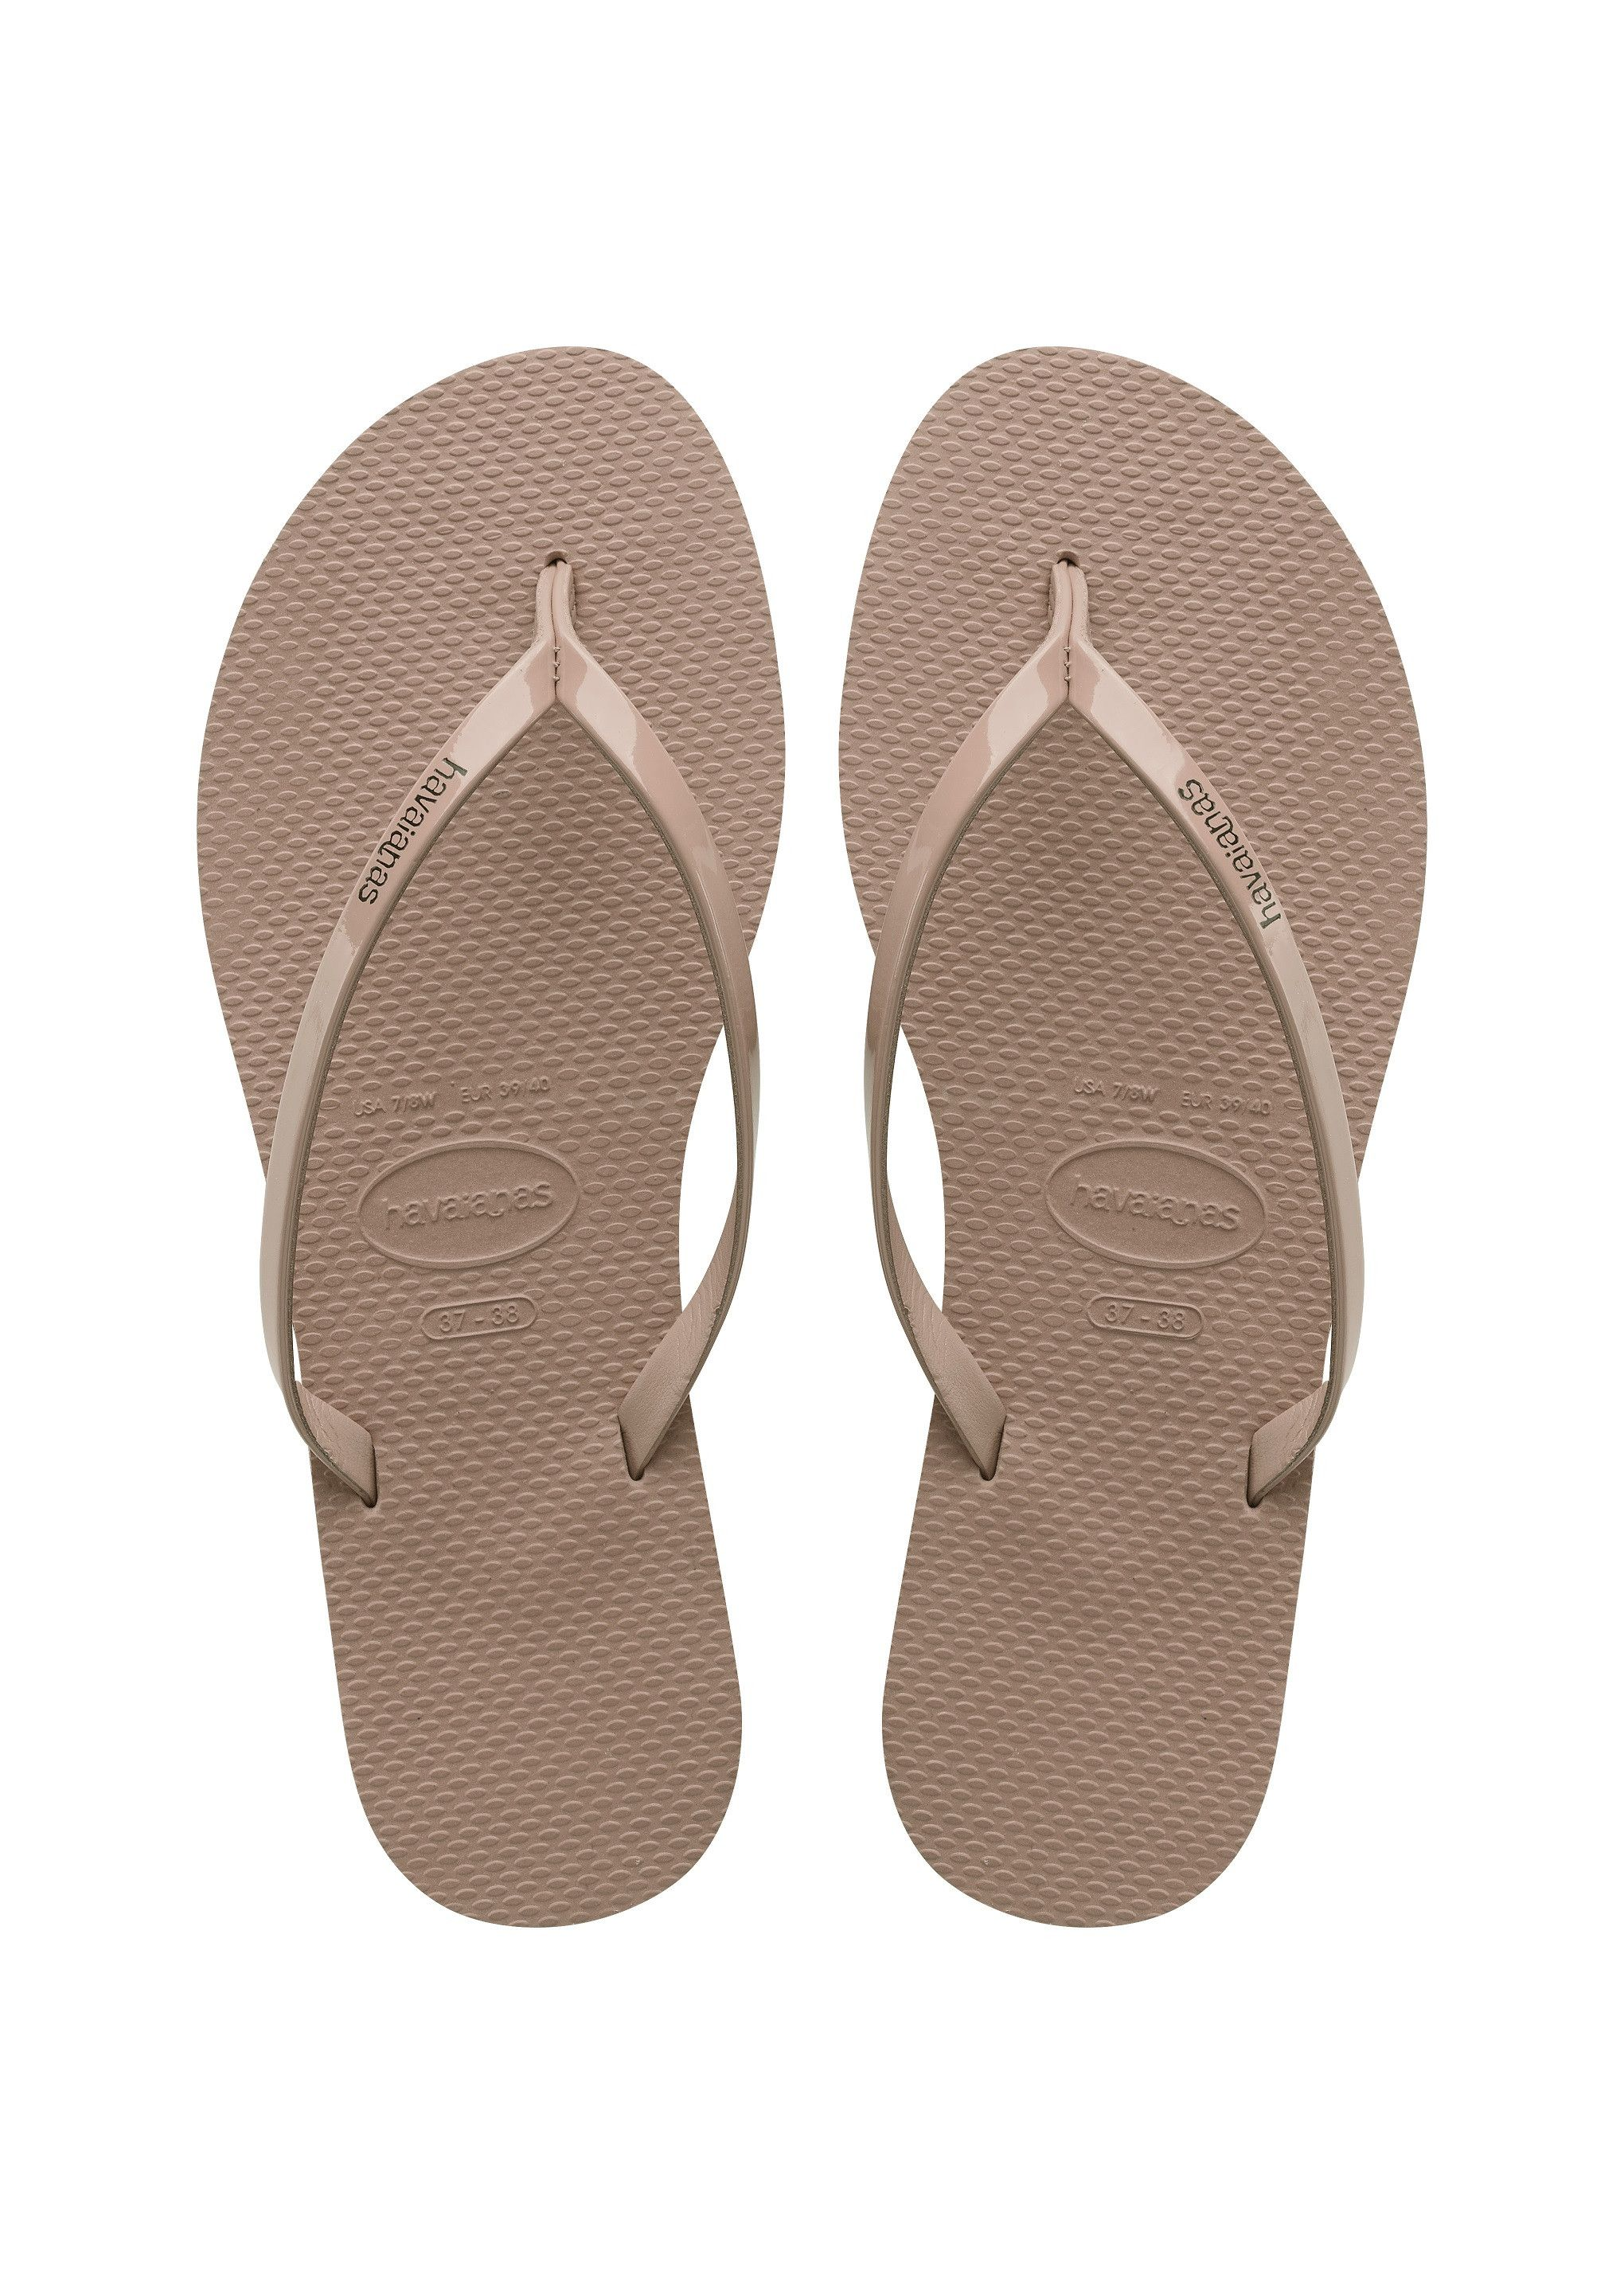 247253381805 Havaianas You Metallic Sandal Rose Gold Price From  £29.79